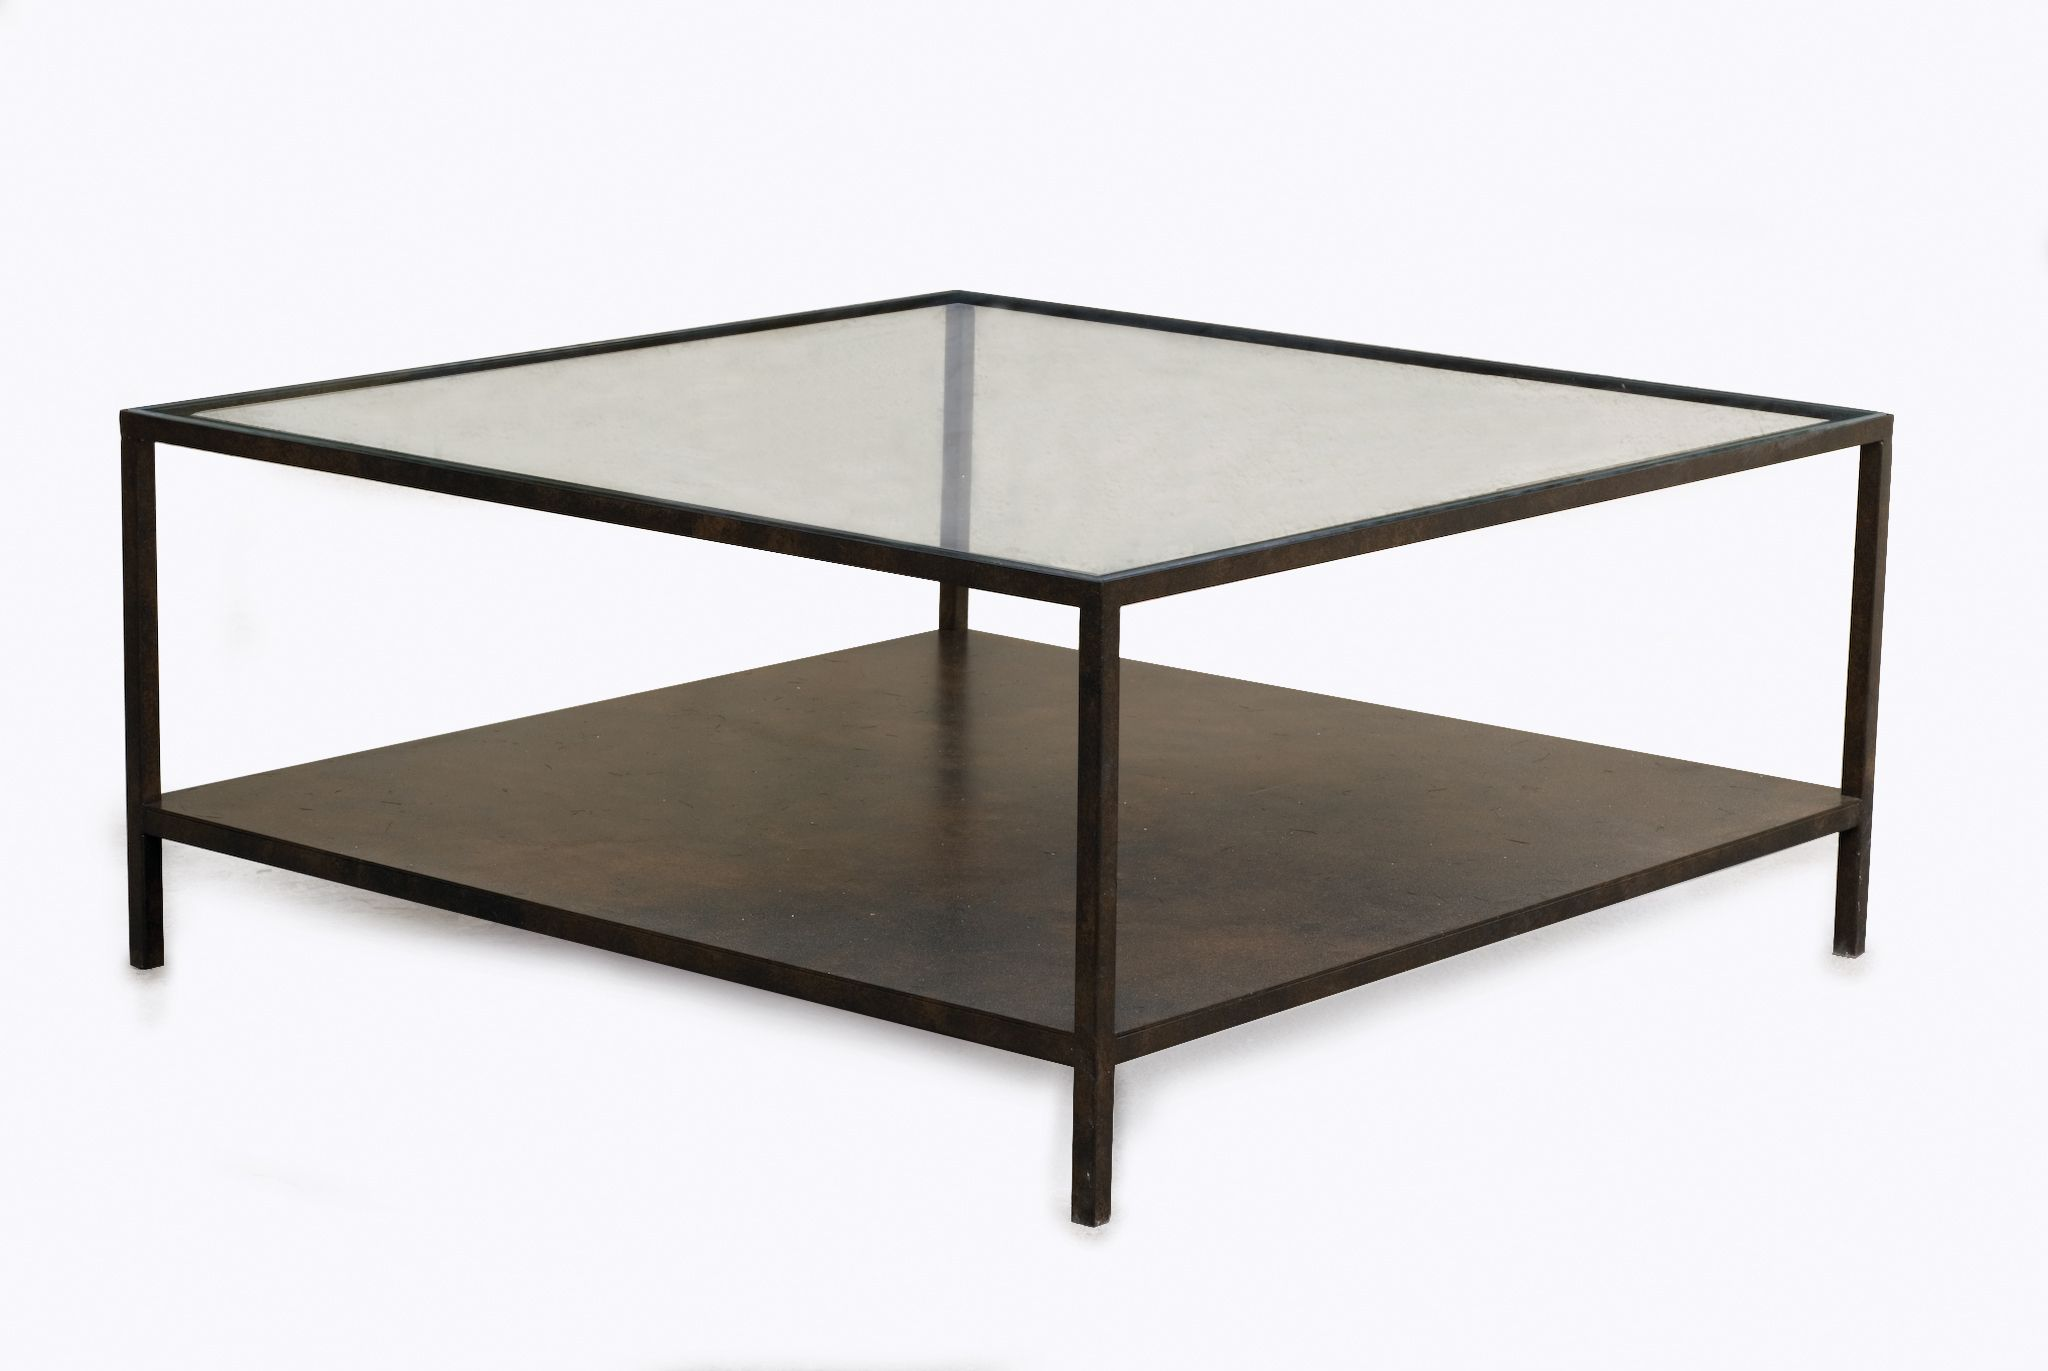 Table basse fer forge plateau verre table basse en fer for Plateau table